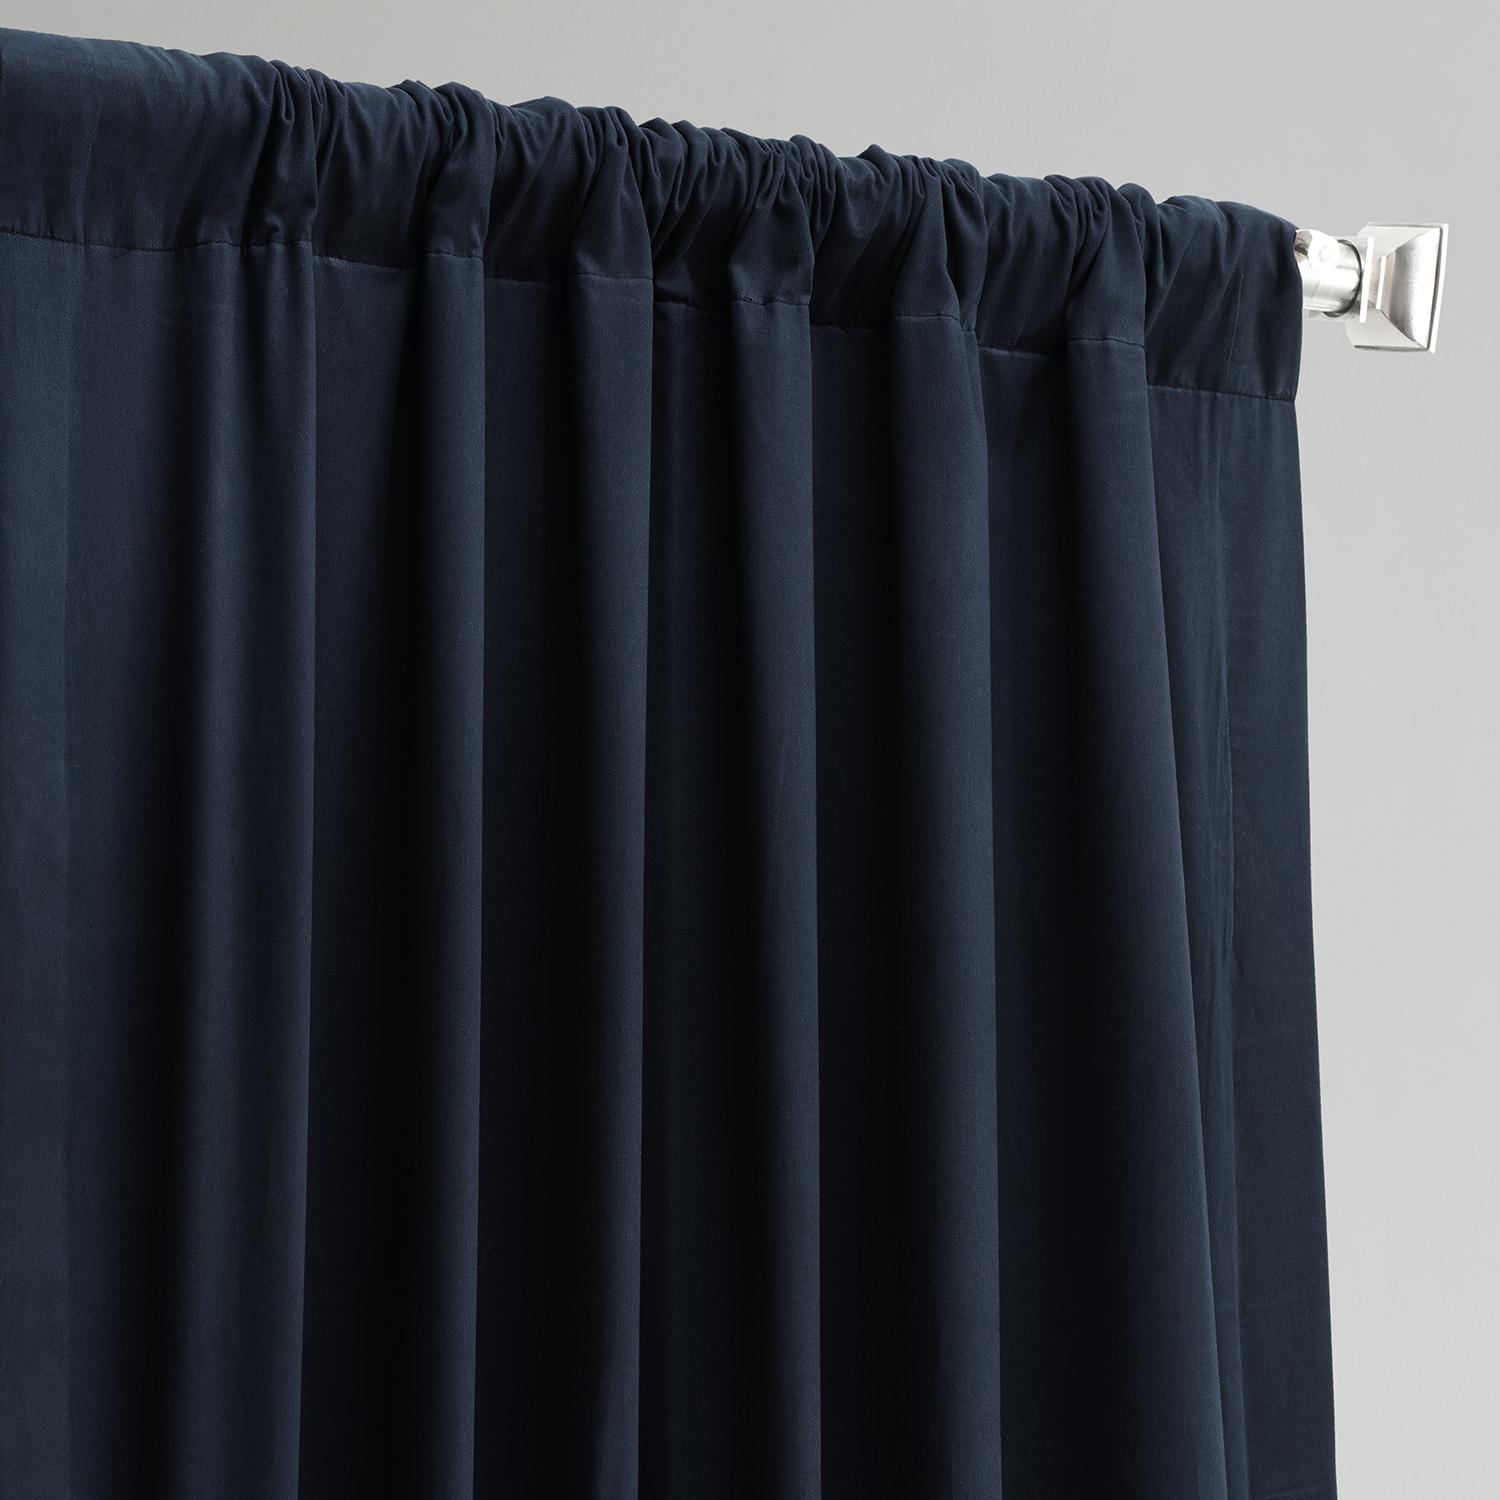 polo navy solid blackout curtain and drapes. Black Bedroom Furniture Sets. Home Design Ideas